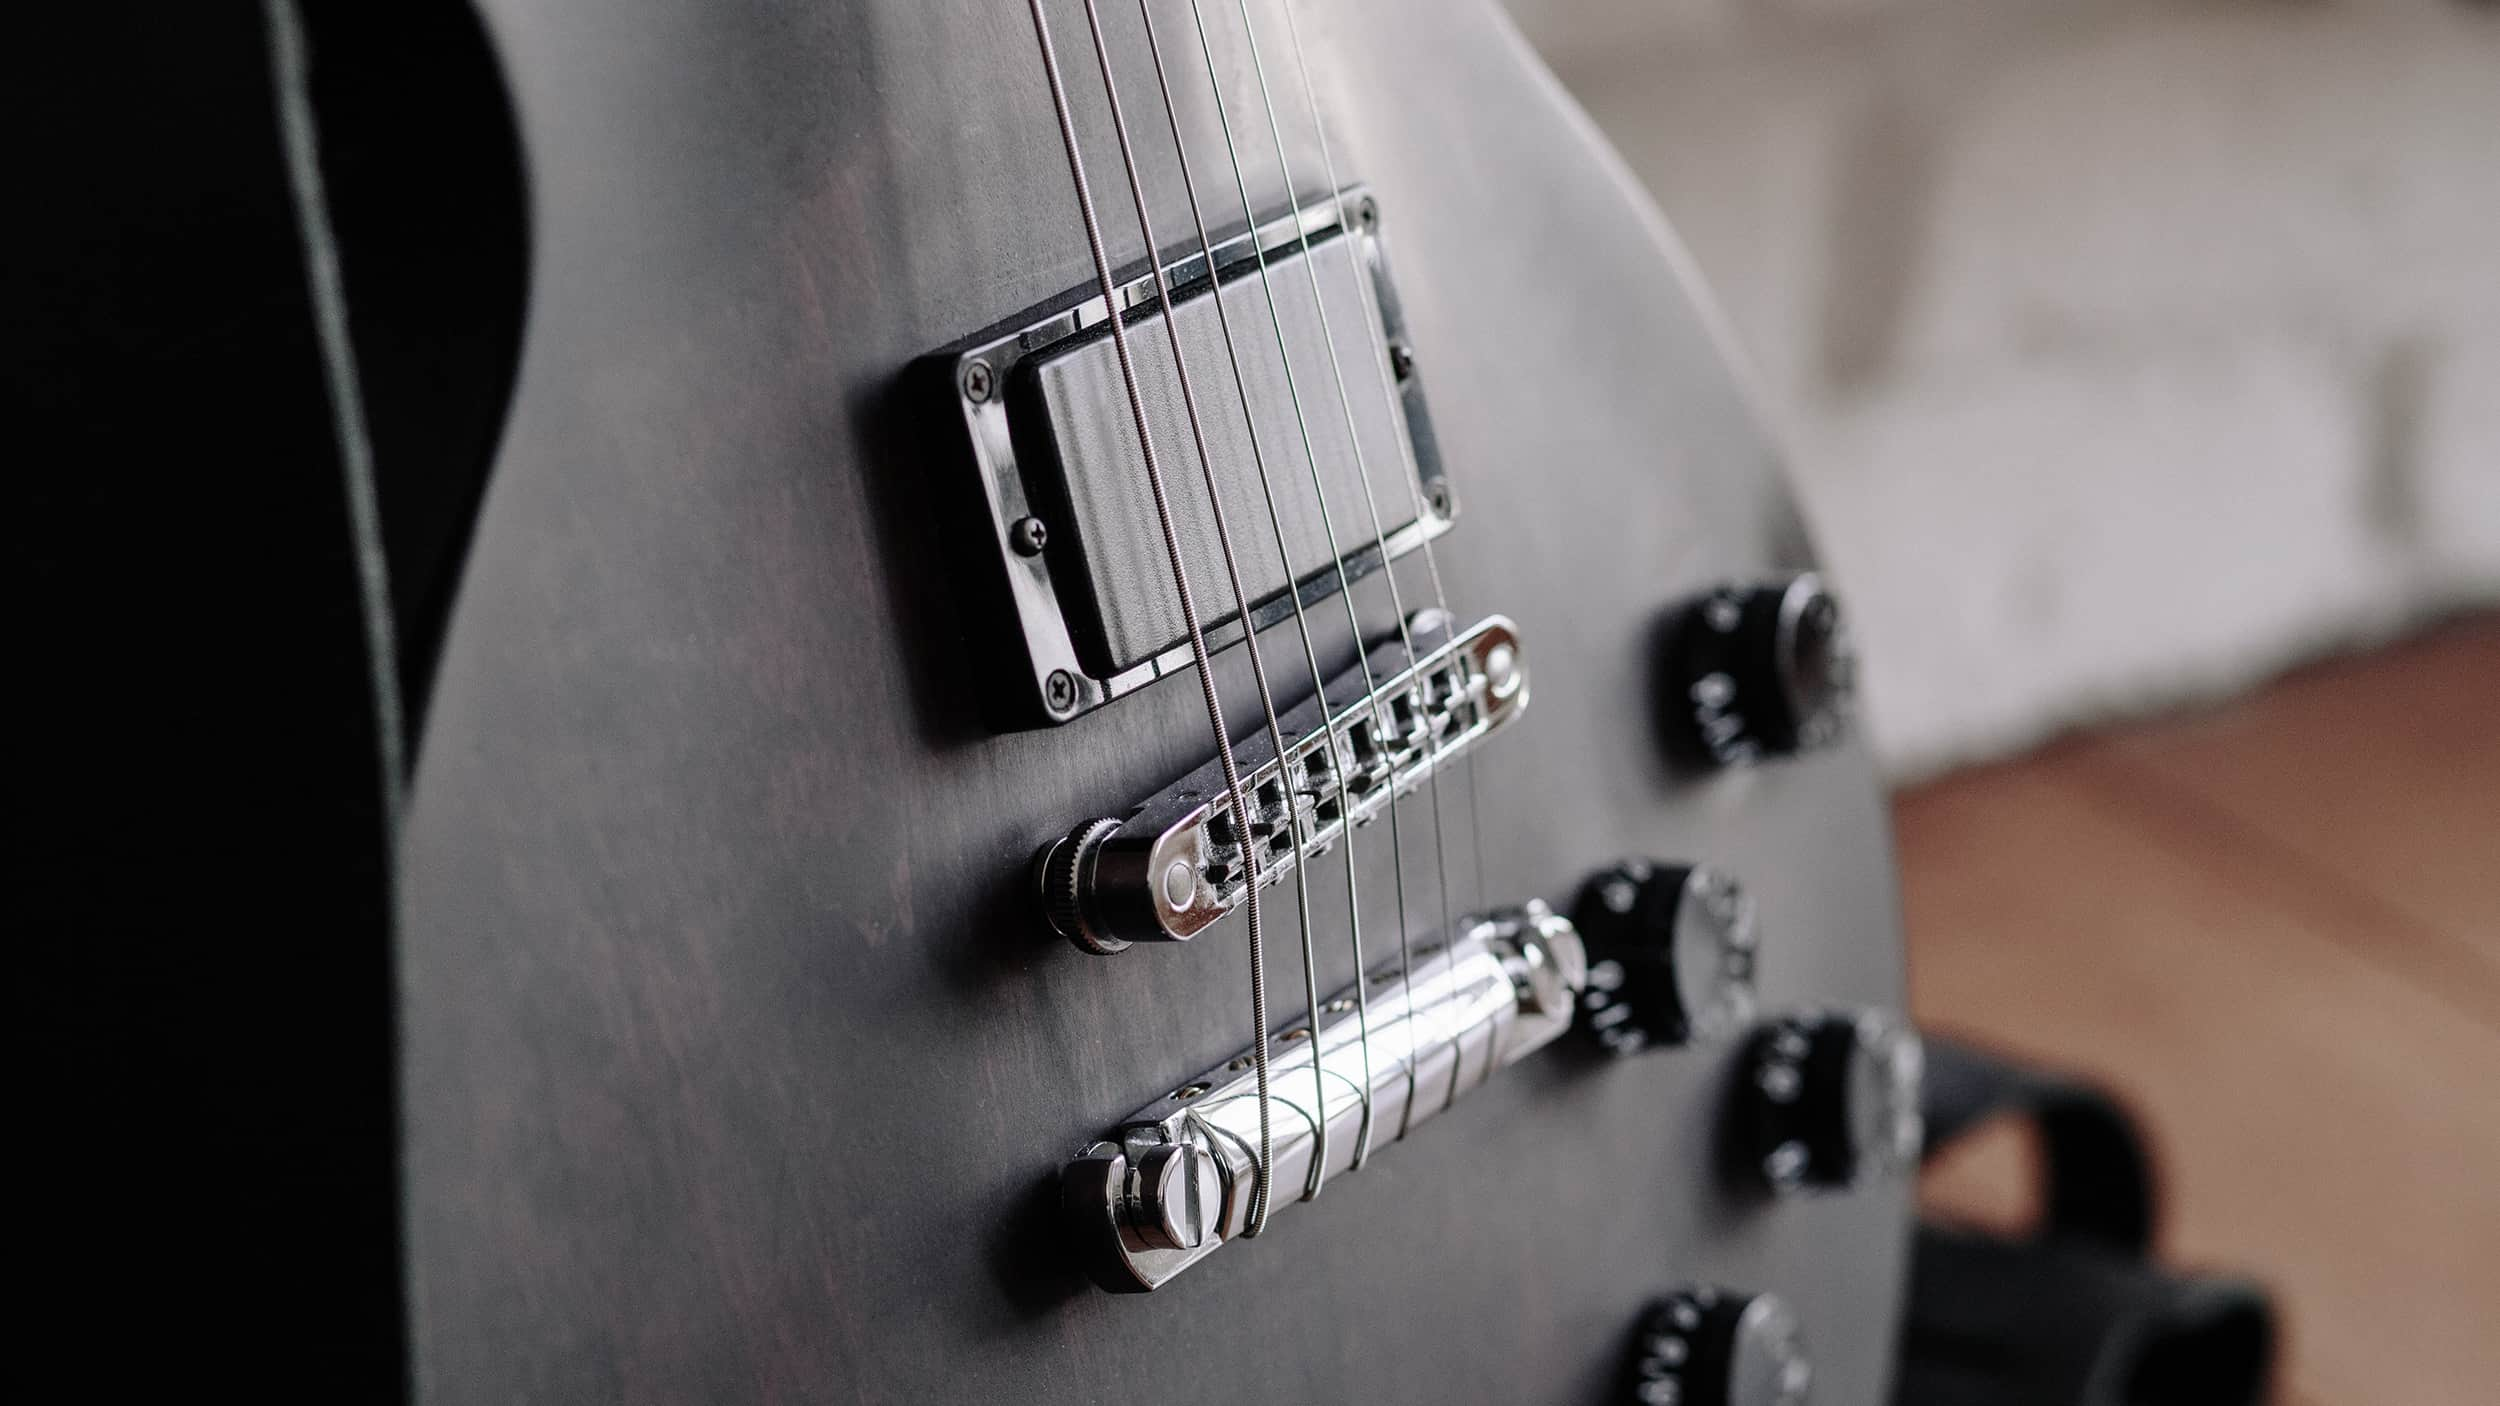 How High Should Guitar Pickups Be?